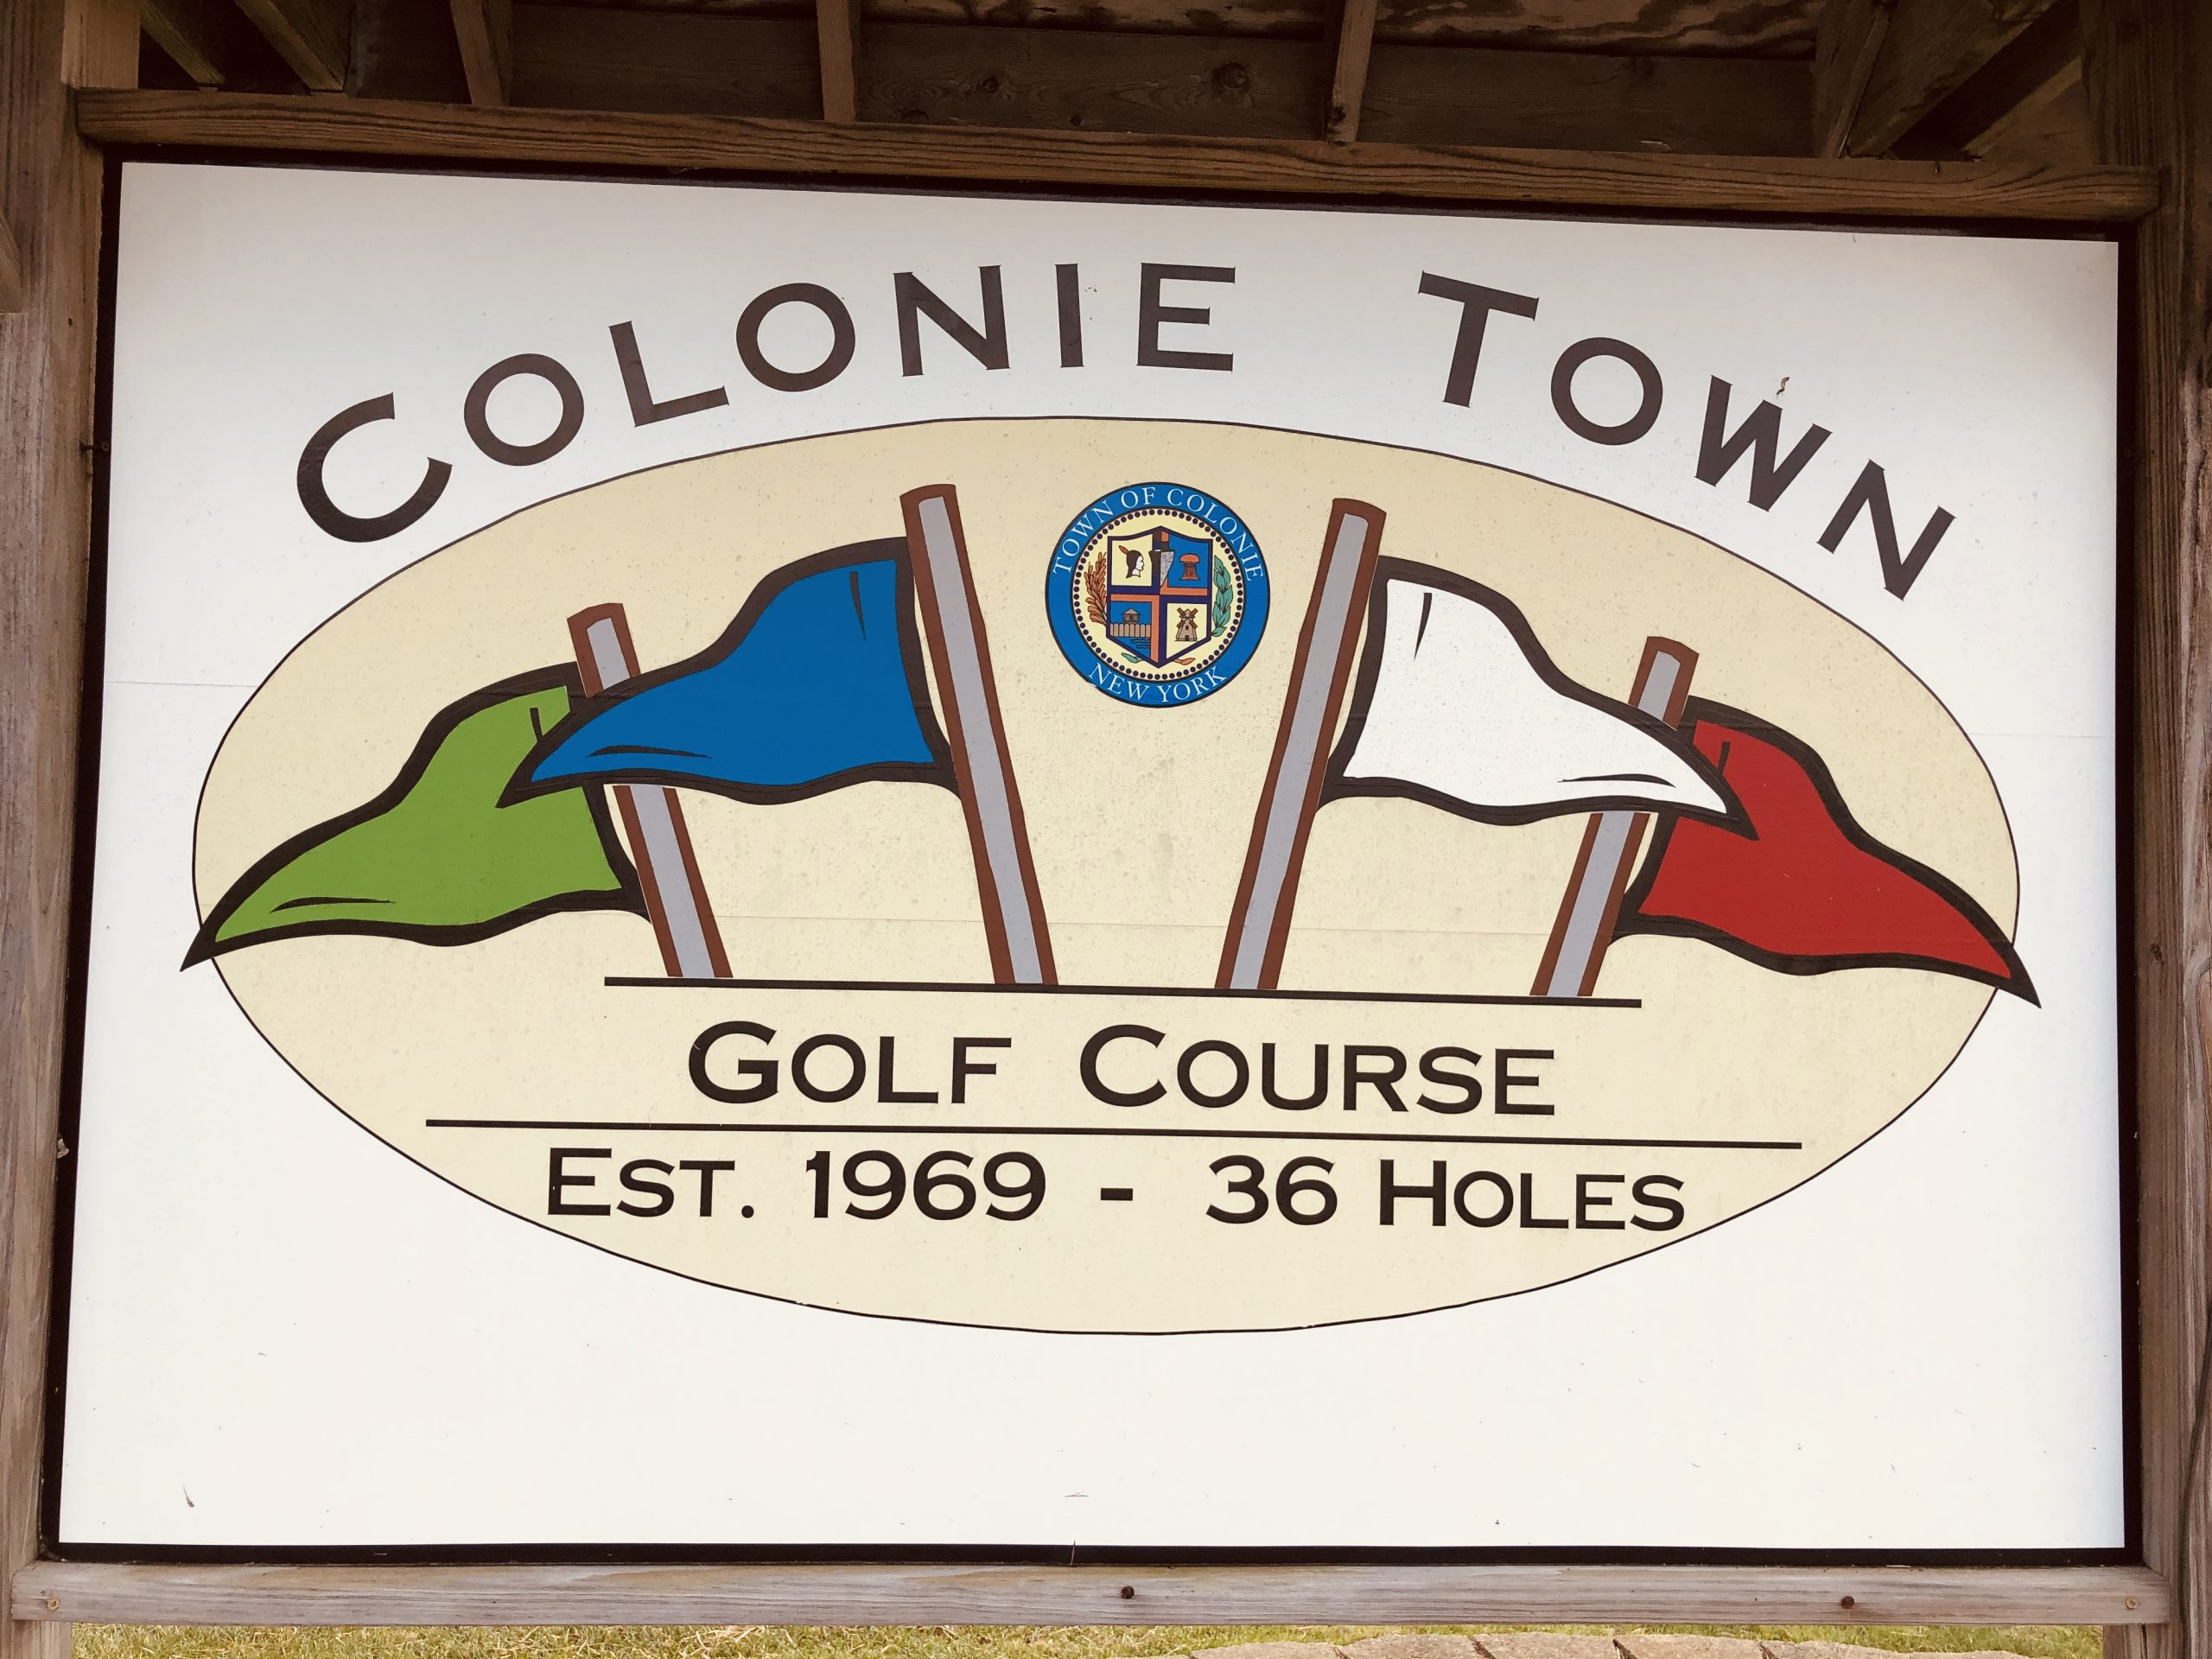 Image for Colonie Town Golf Course